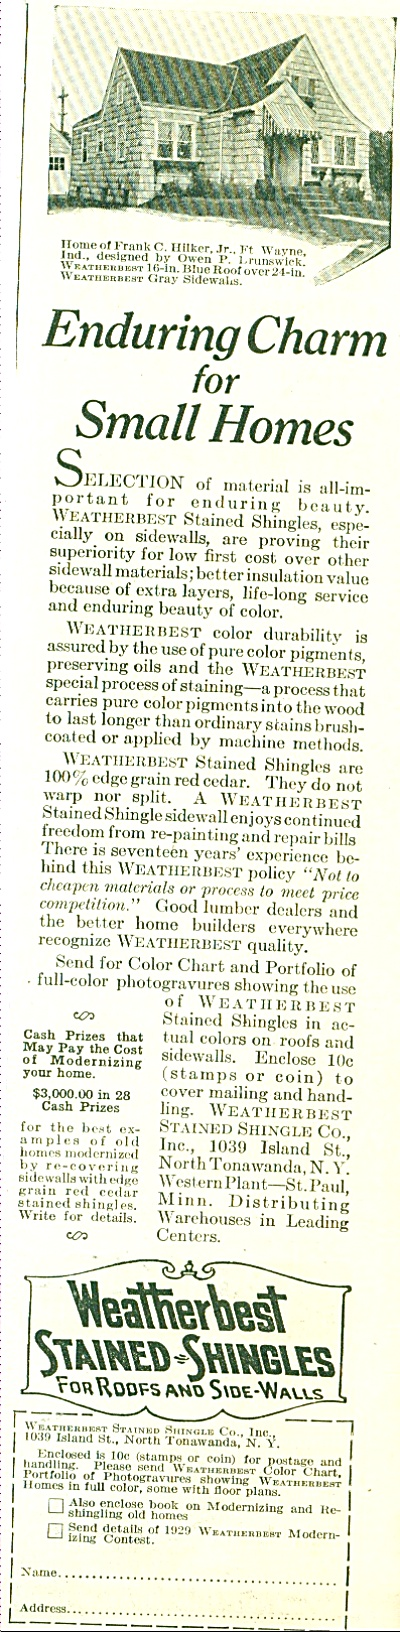 1929 Weatherbest Stained Shingles AD (Image1)